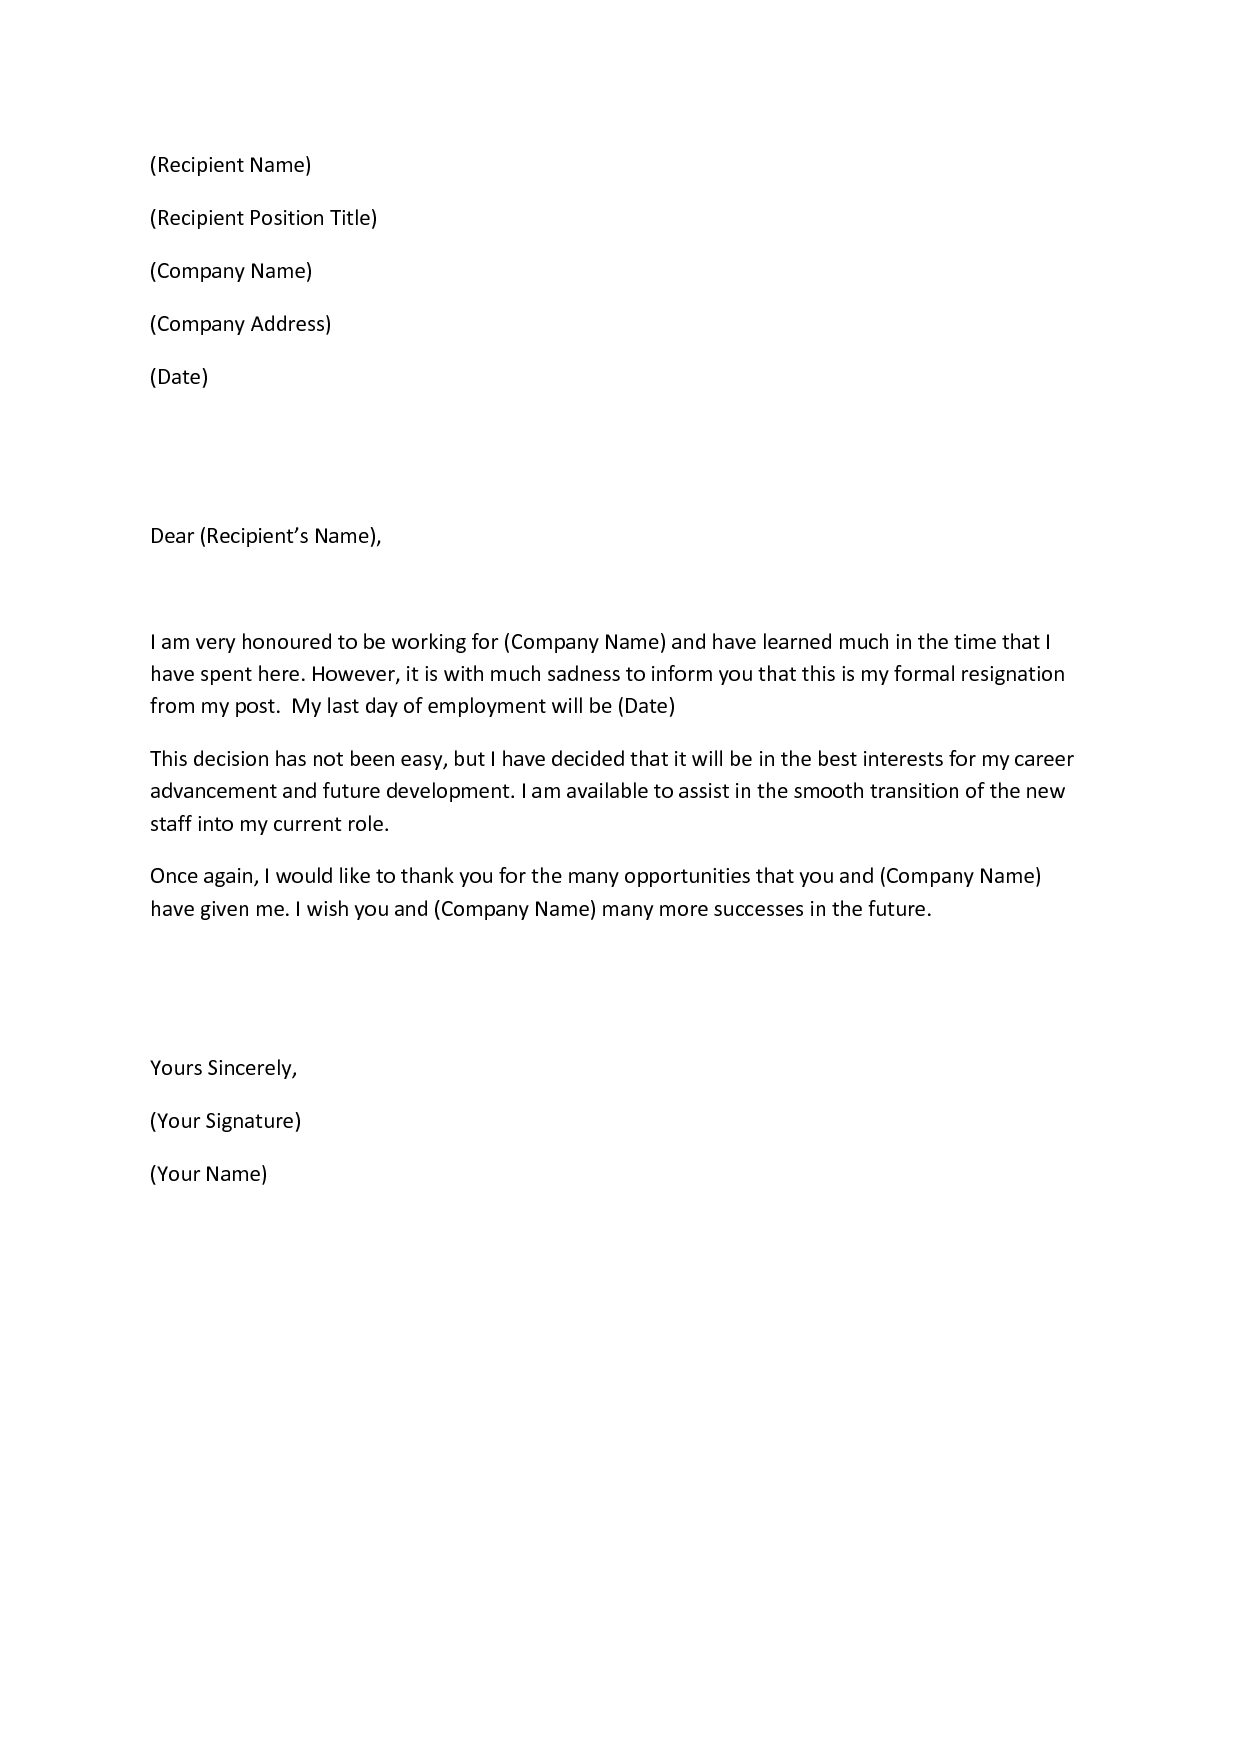 example of resignation letter google search - Examples Of Resignations Letters